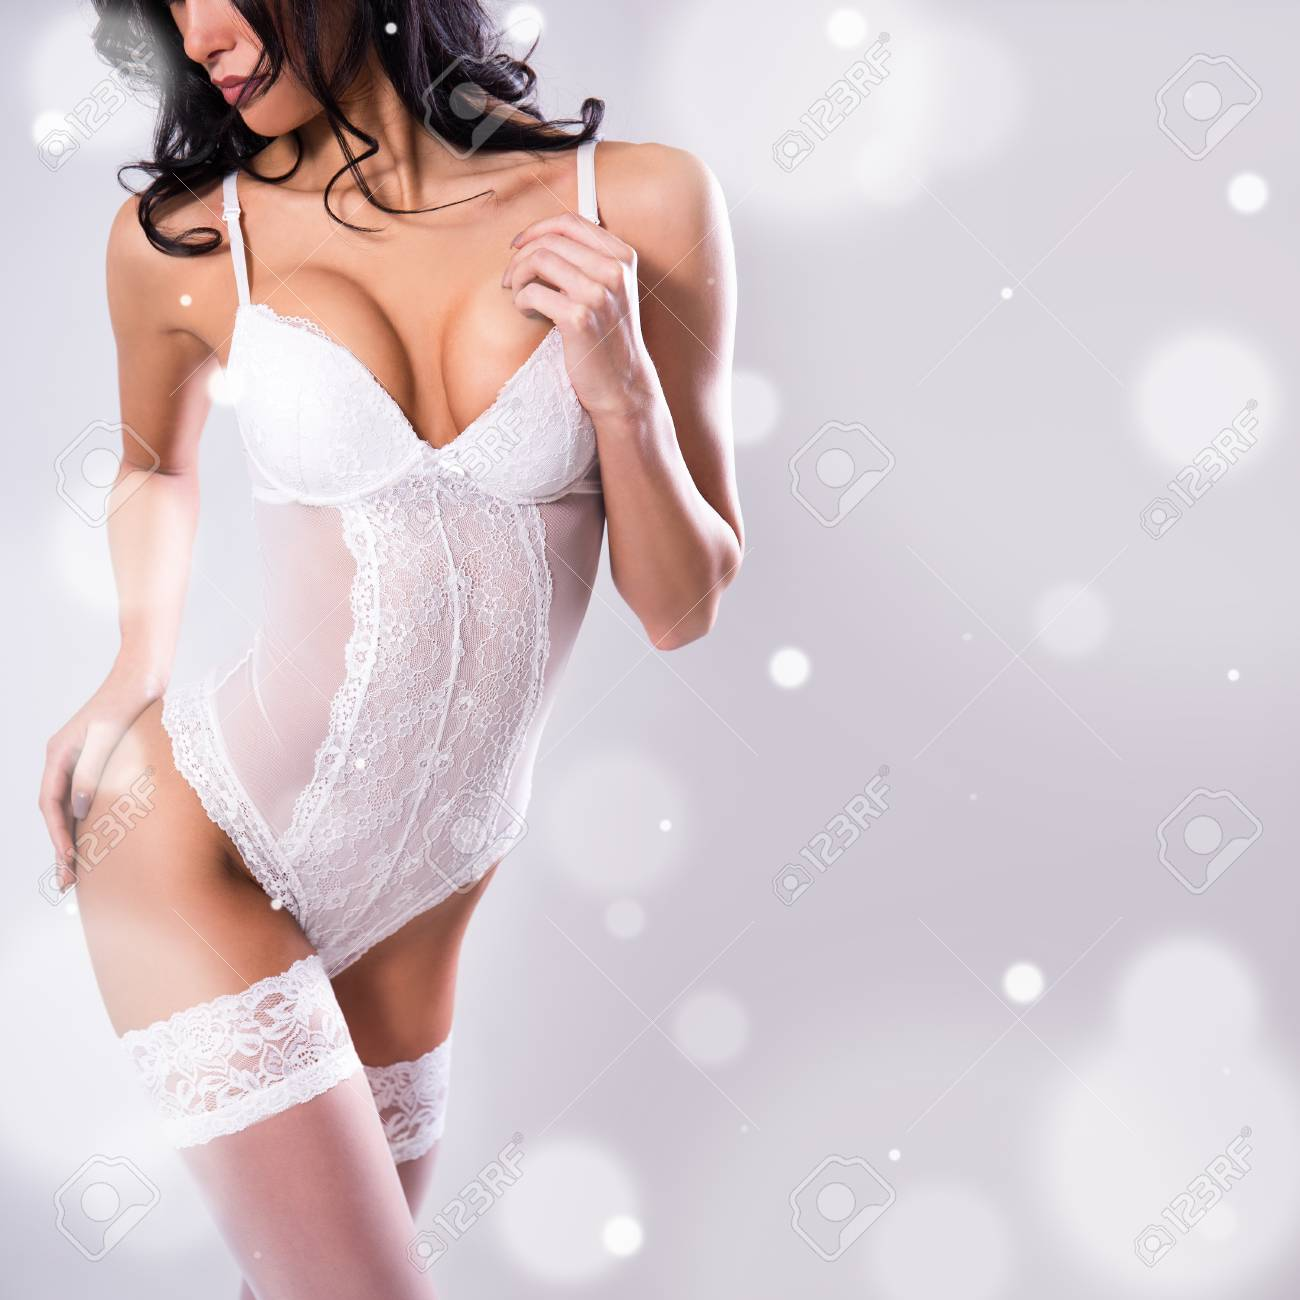 ecd554cf7 sexy female body in white lace bodysuit over gray background with falling  snow Stock Photo -